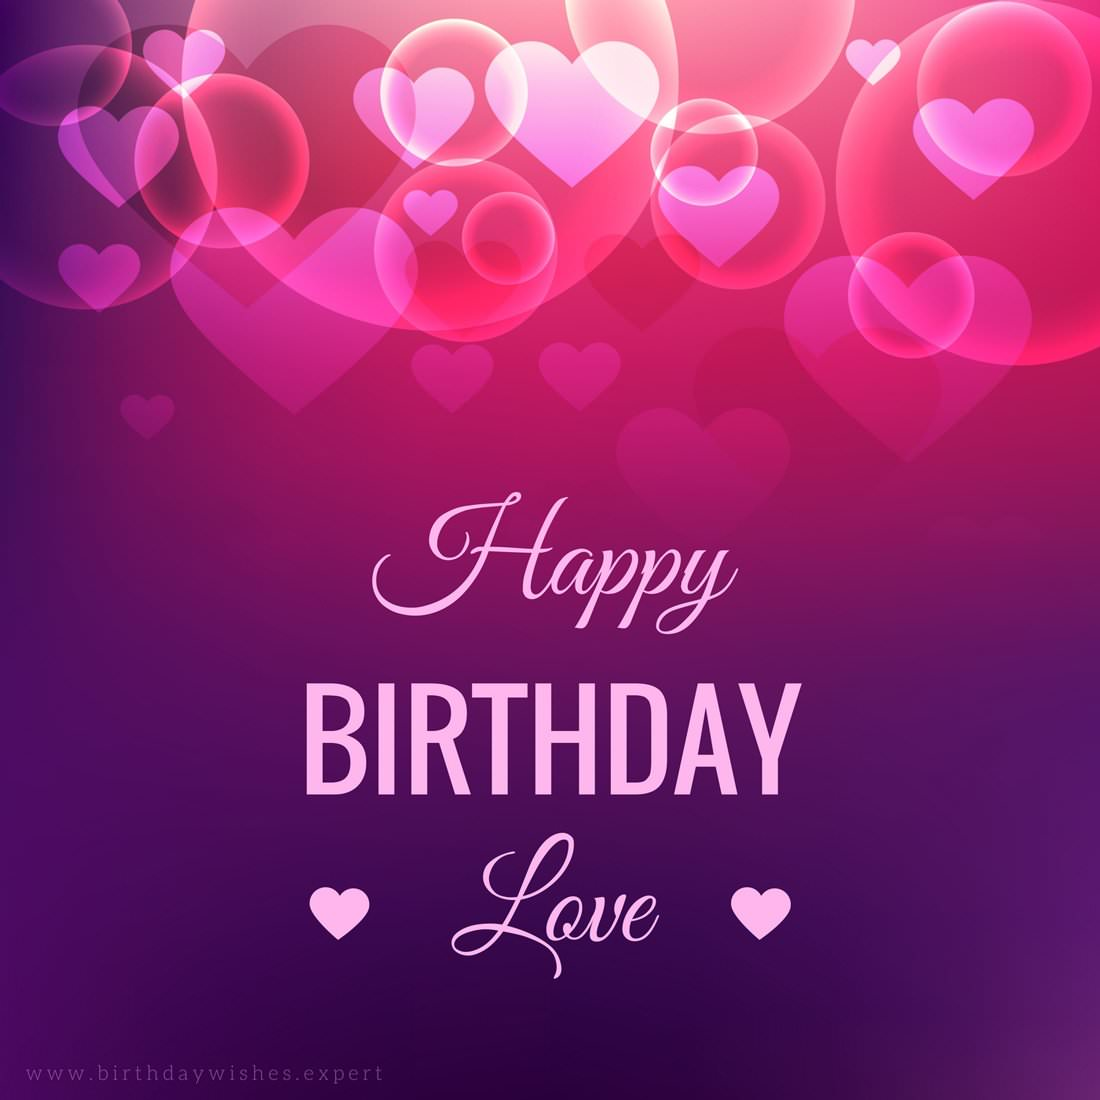 birthday wishes images pictures ; Birthday-wish-for-boyfriend-on-background-with-red-hearts